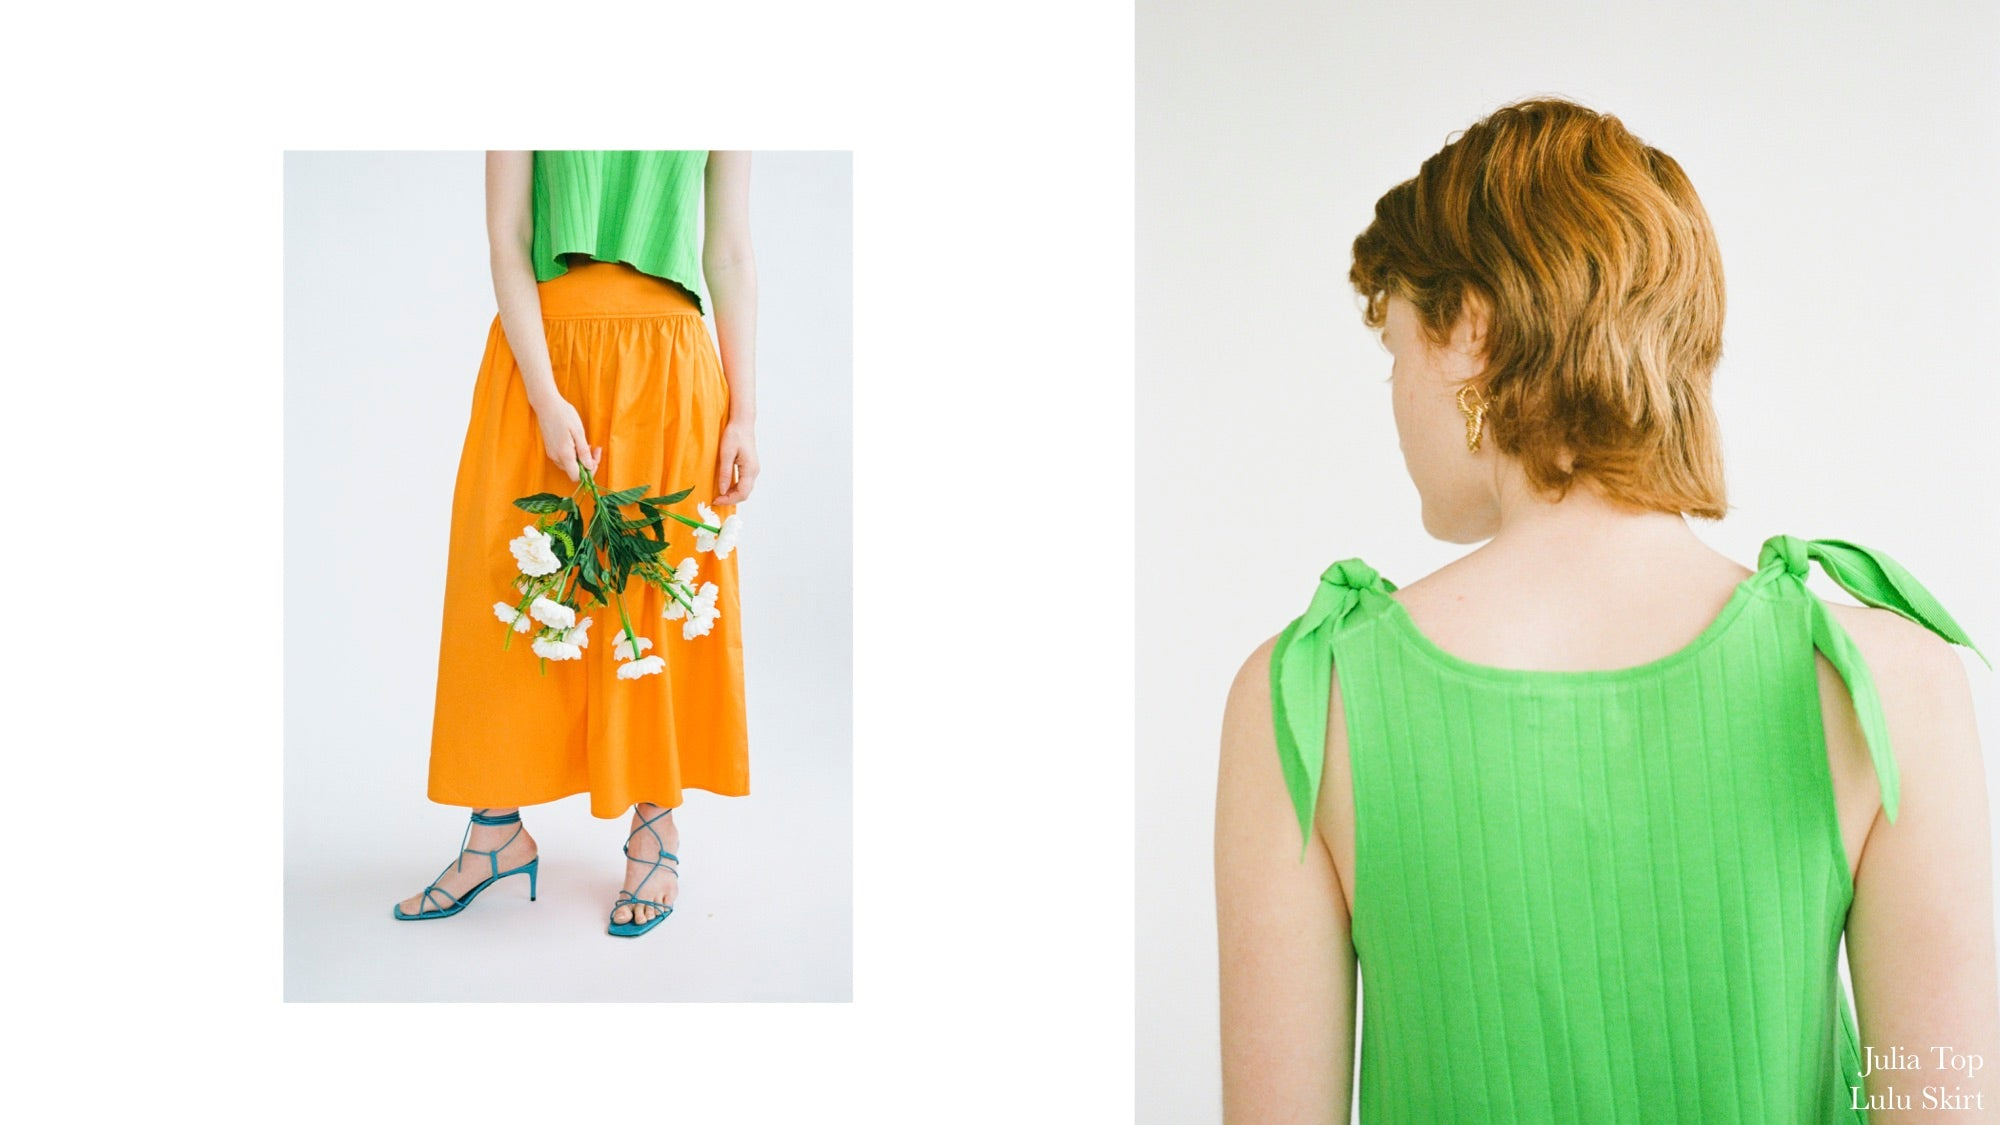 WRAY PF20 Lookbook featuring the carrot orange Lulu Skirt and cucumber green Julia Tank